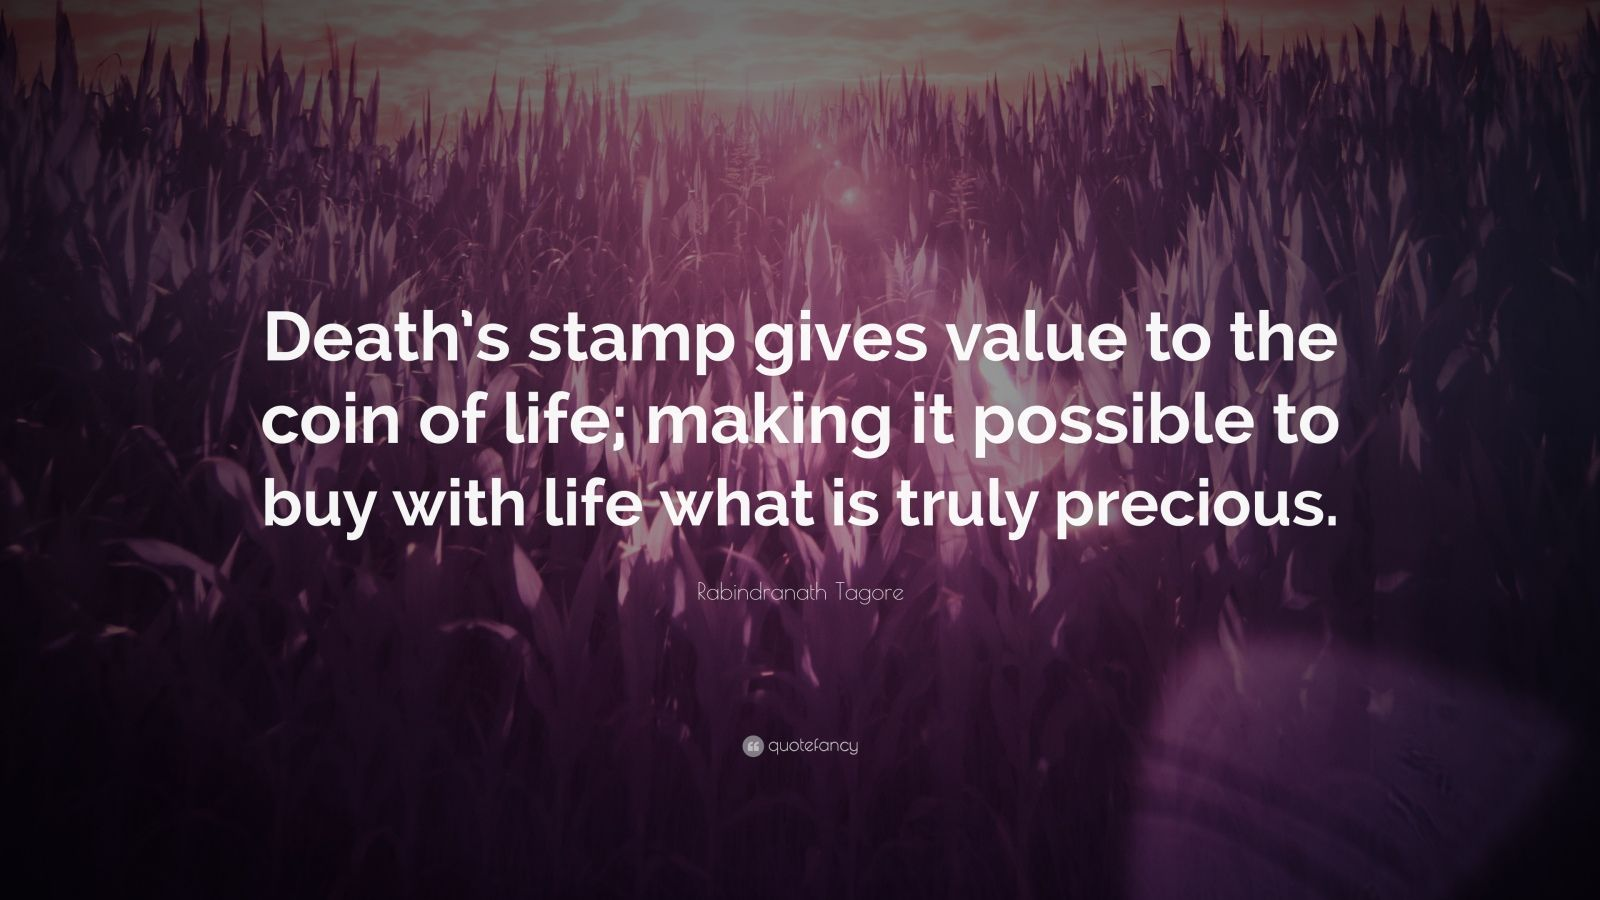 """Rabindranath Tagore Quote: """"Death's stamp gives value to the coin of life; making it possible to buy with life what is truly precious."""""""